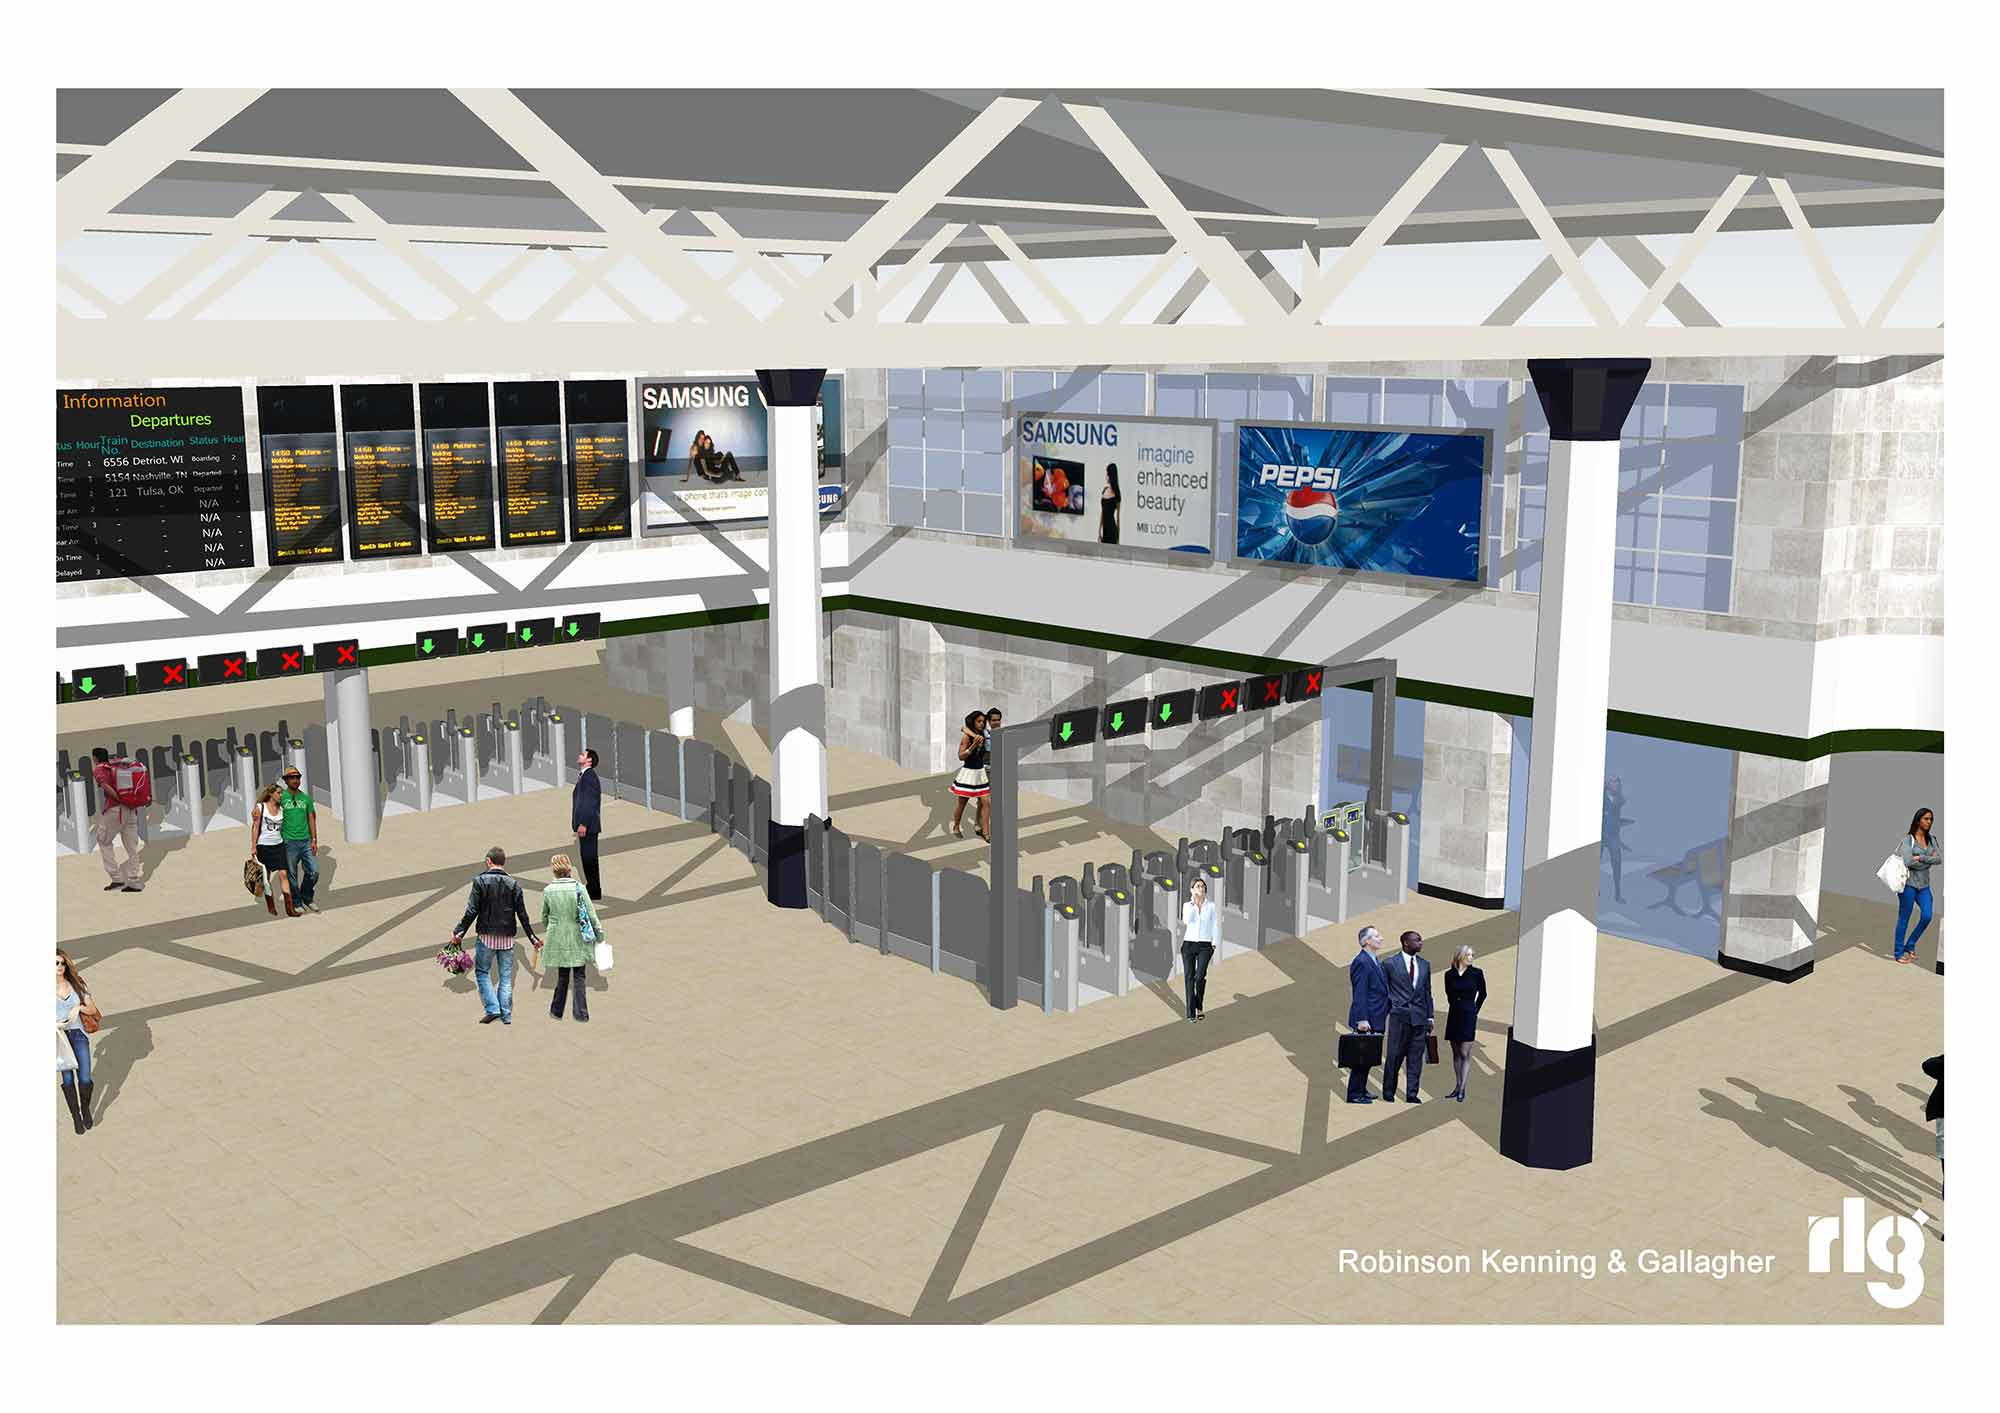 3434-Charing-Cross-Concourse-Proposed-01.jpg